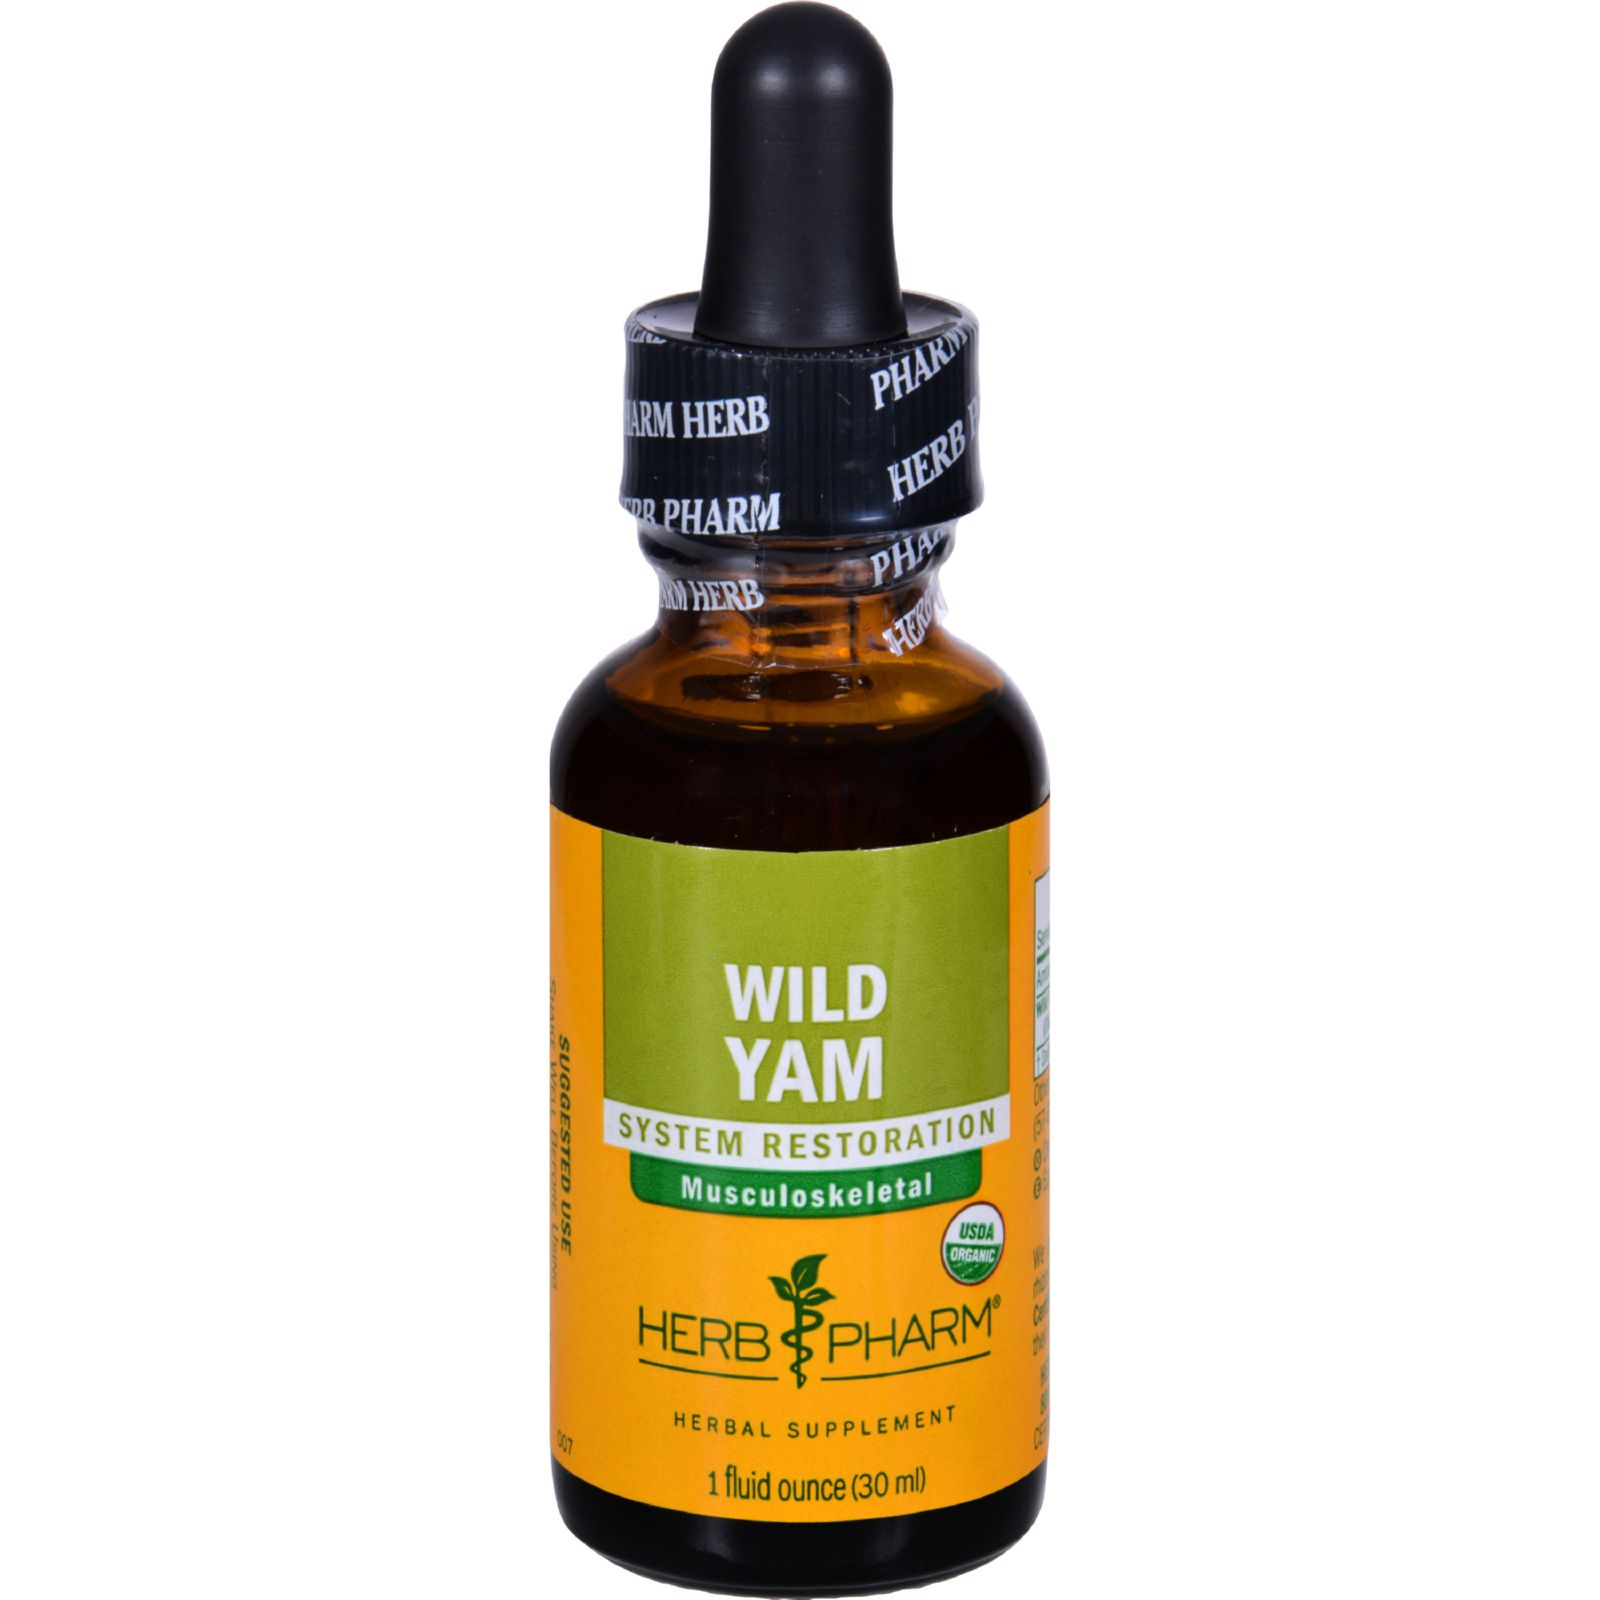 Herb Pharm Wild Yam Liquid Herbal Extract - 1 fl oz